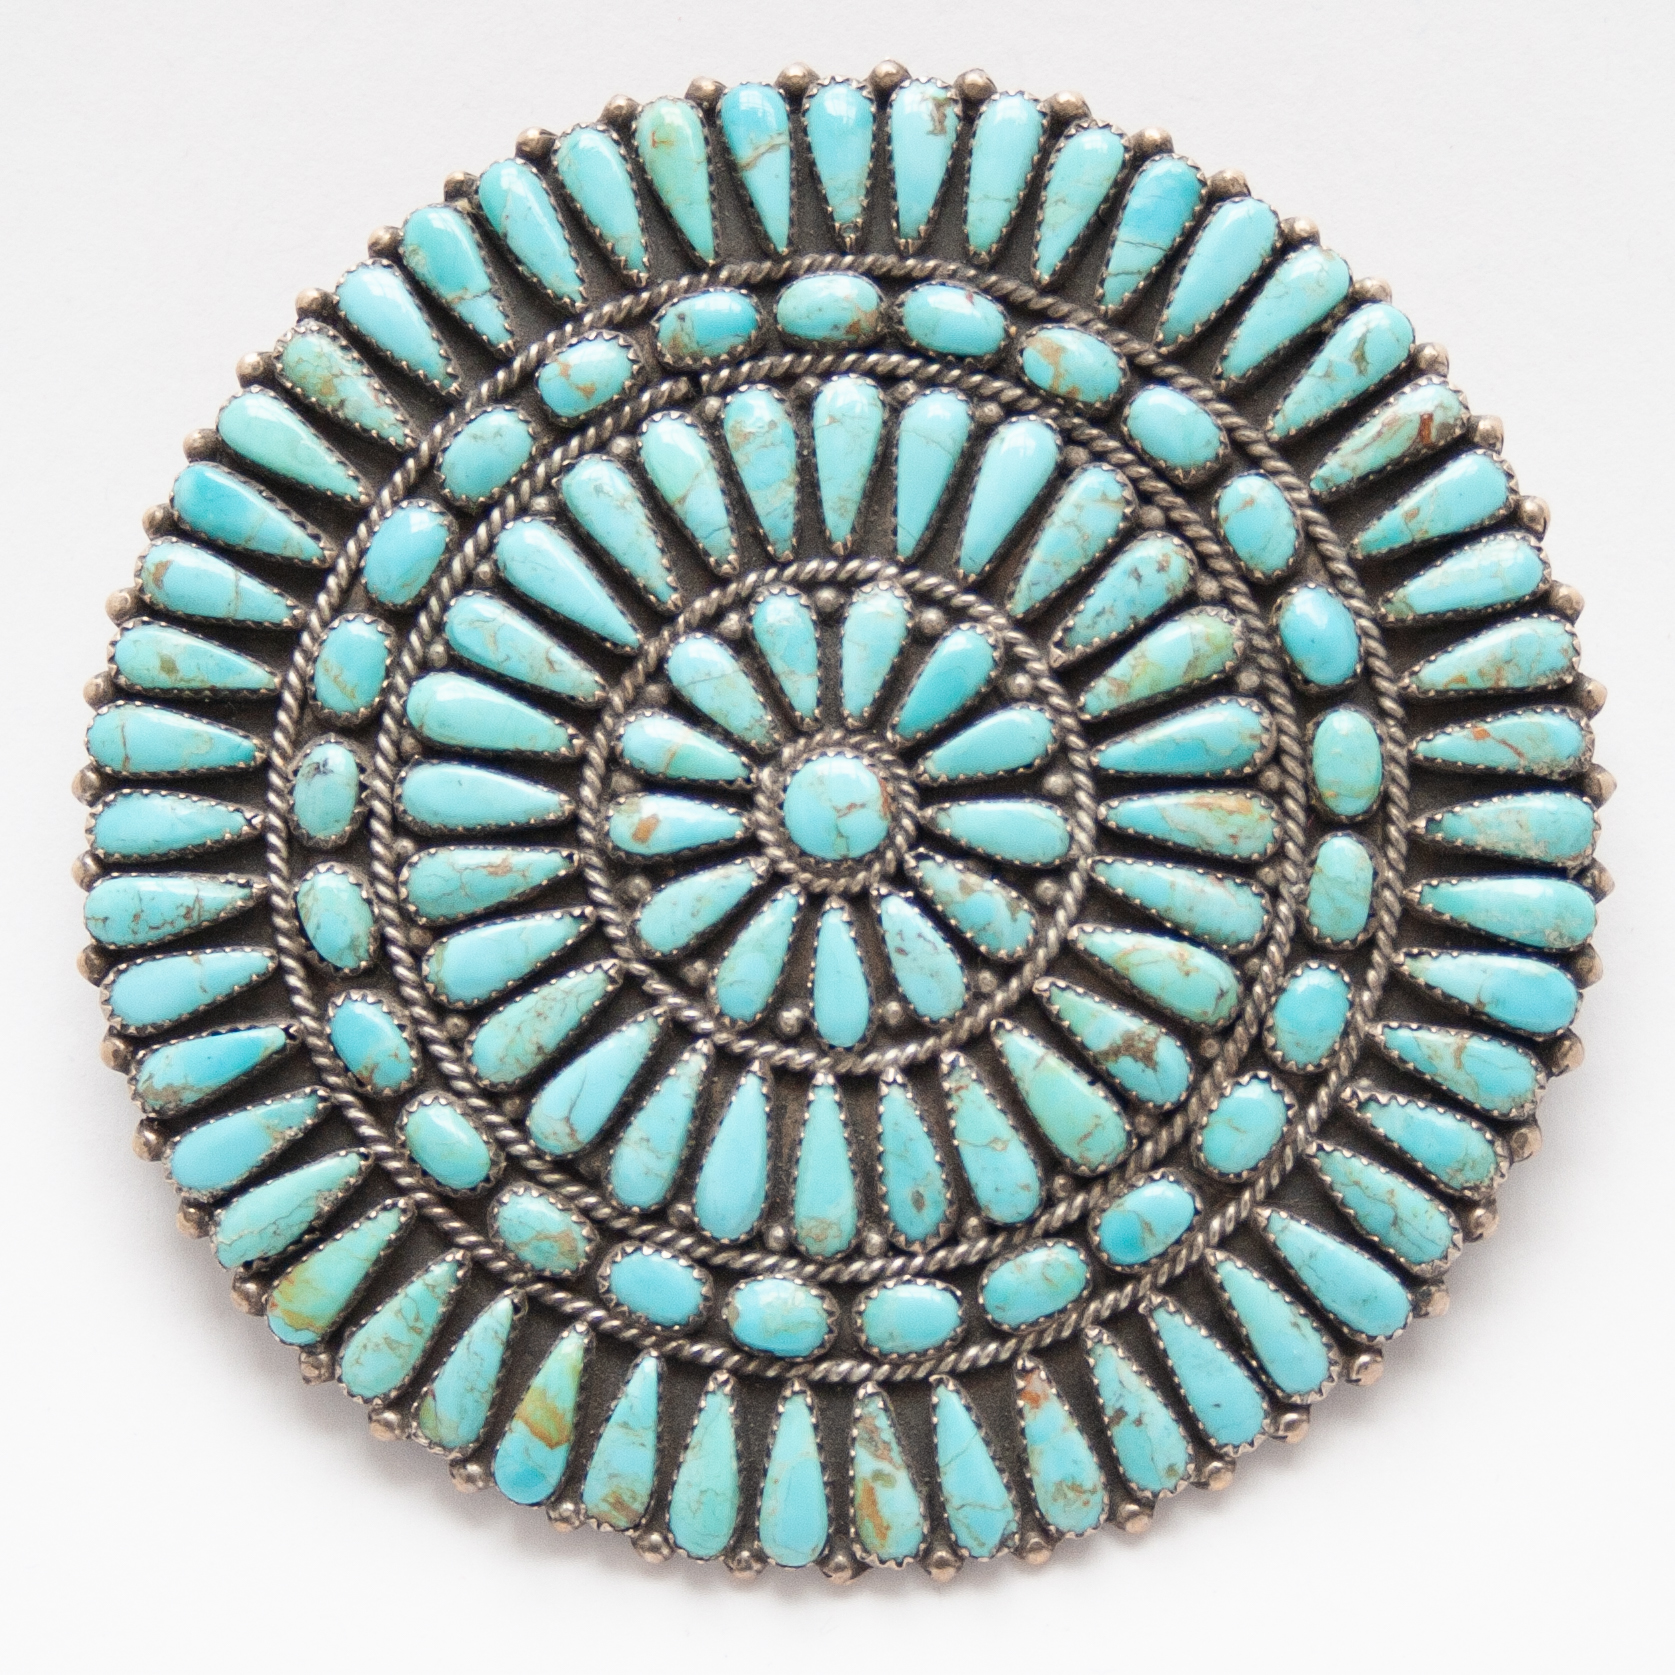 Large Vintage Judy Wallace Turquoise Needlepoint Pin Brooch Pendant